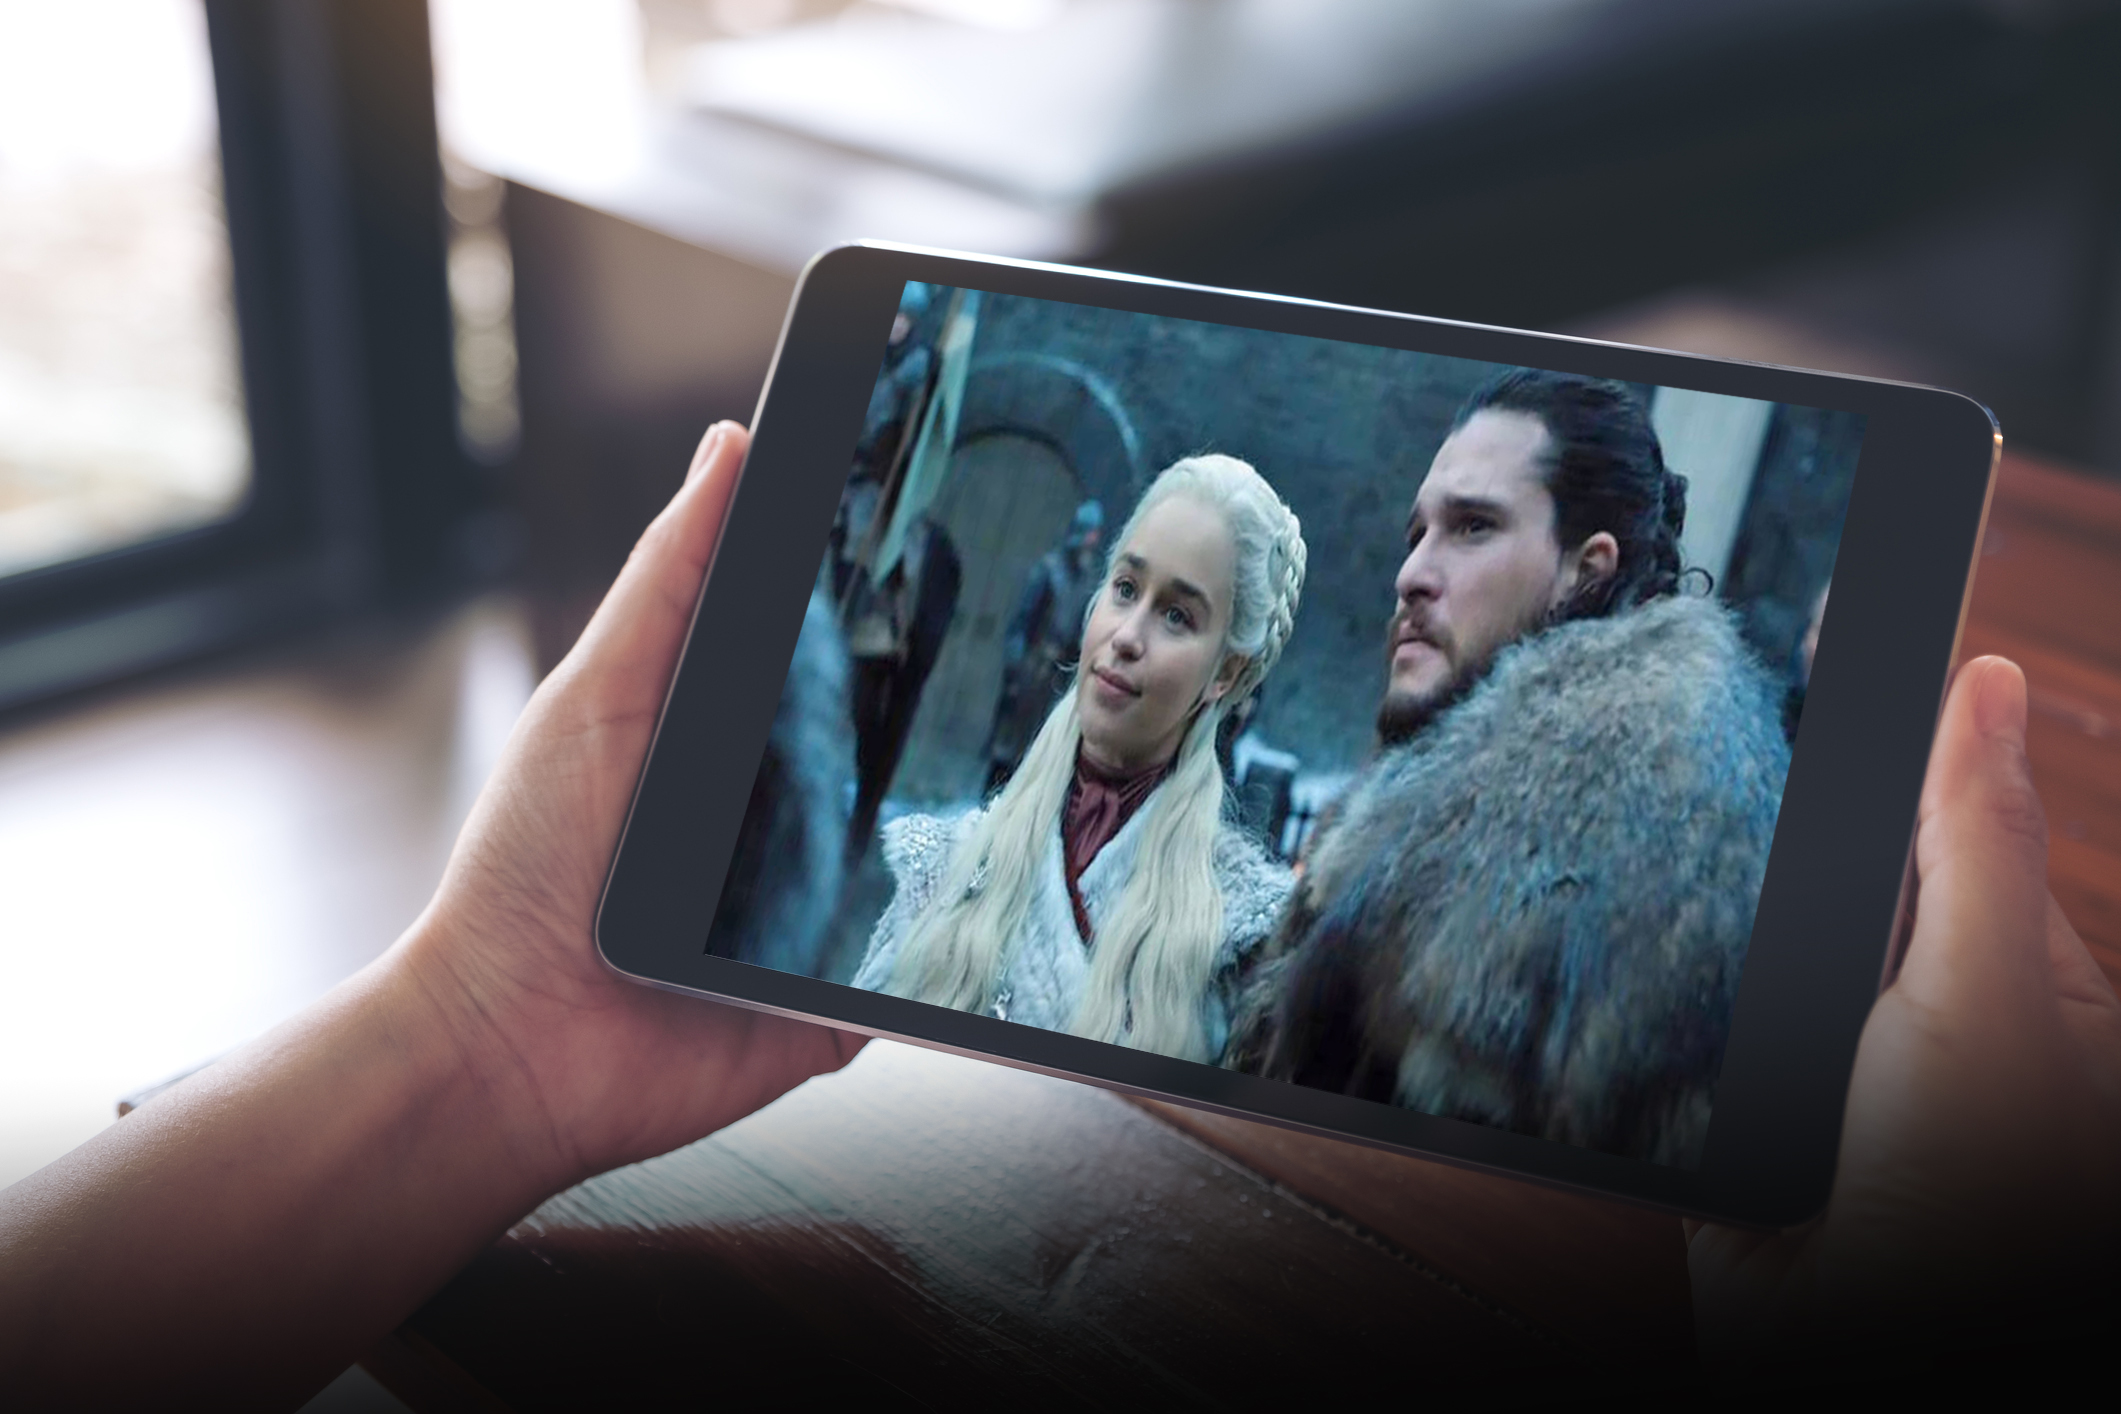 The end of 'Game of Thrones' means fragmented viewership will only increase